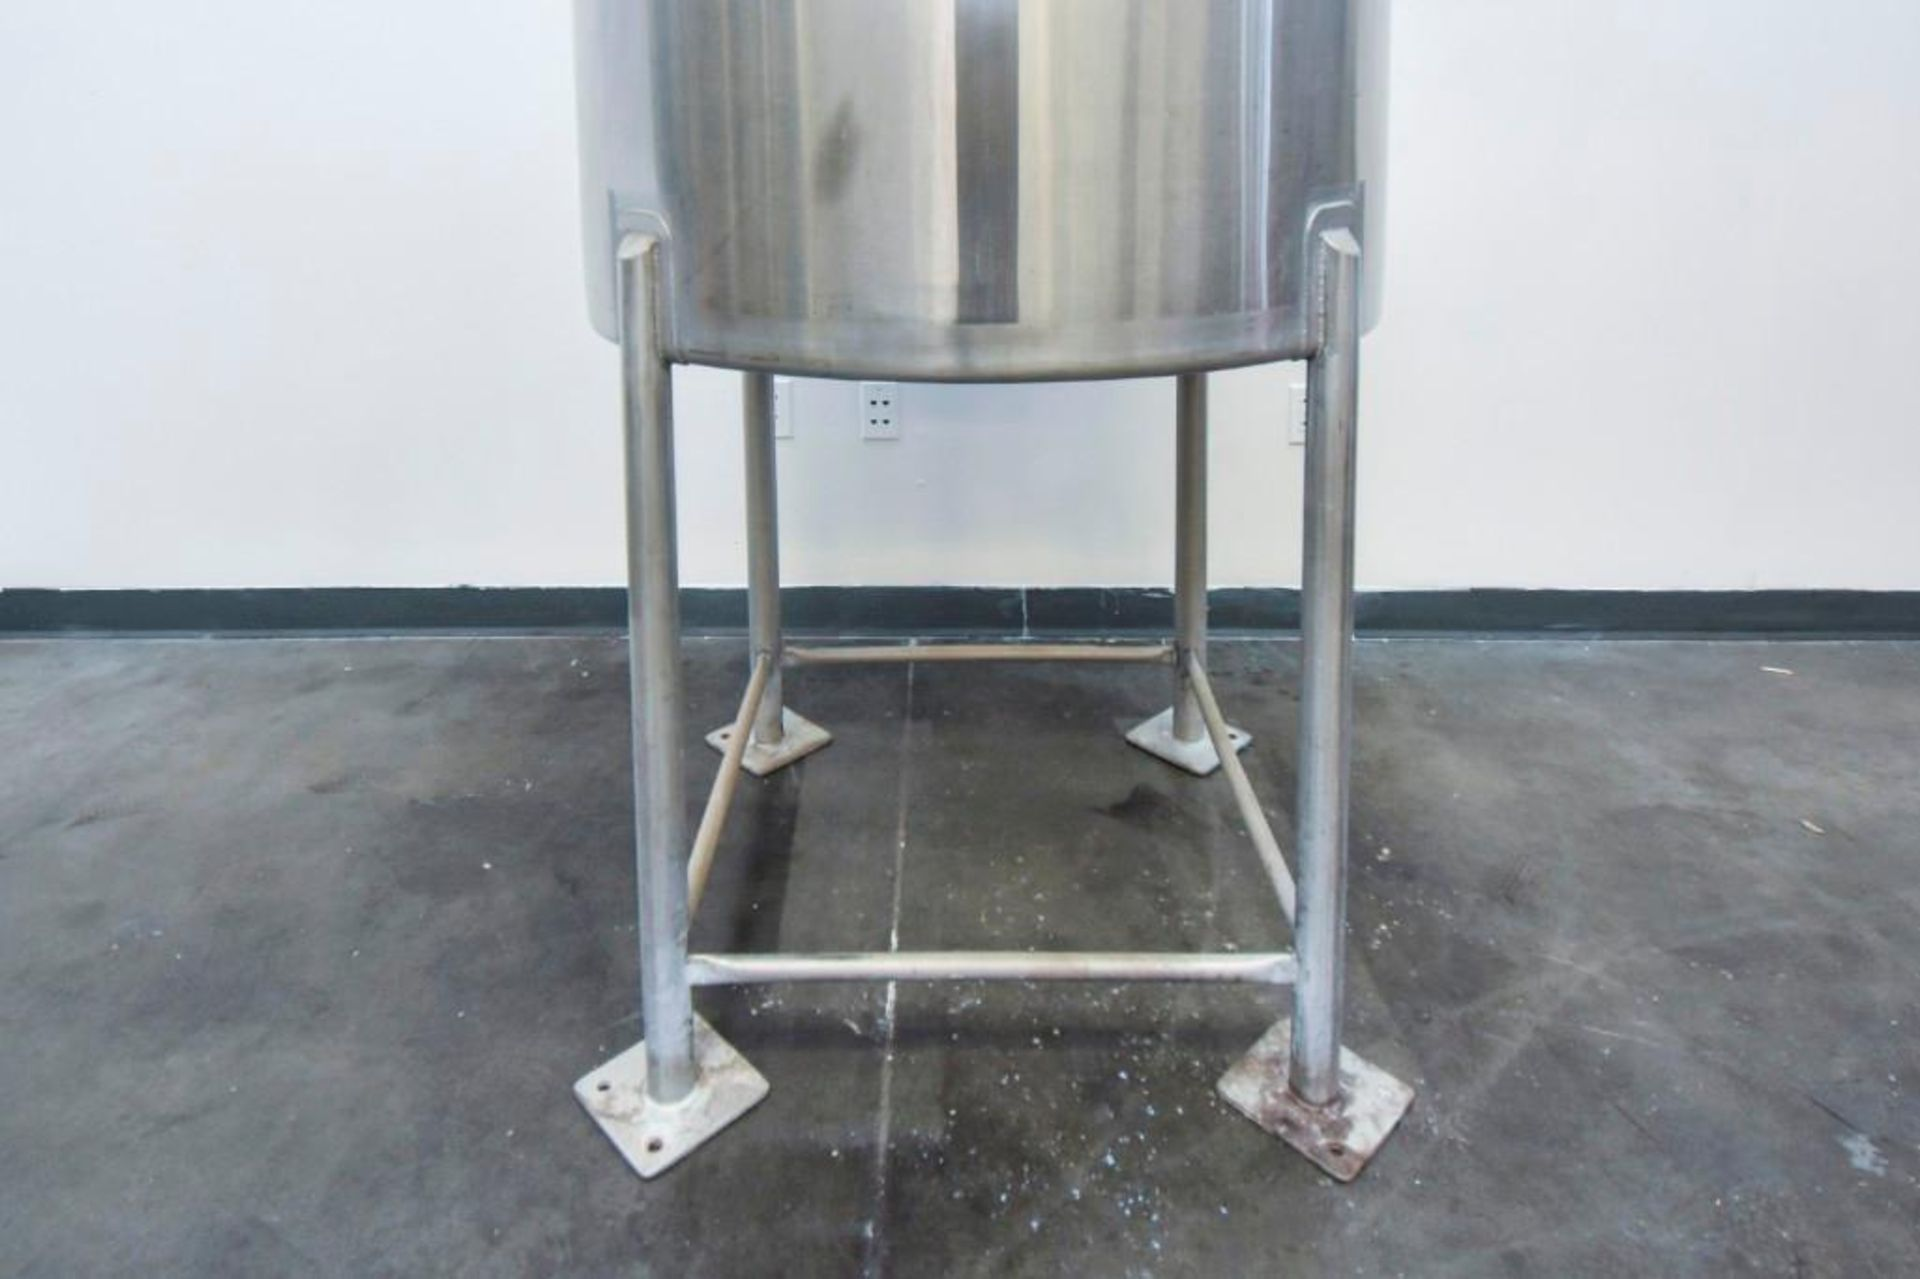 Stainless Steel Mixing/Holding Tank - Image 5 of 12